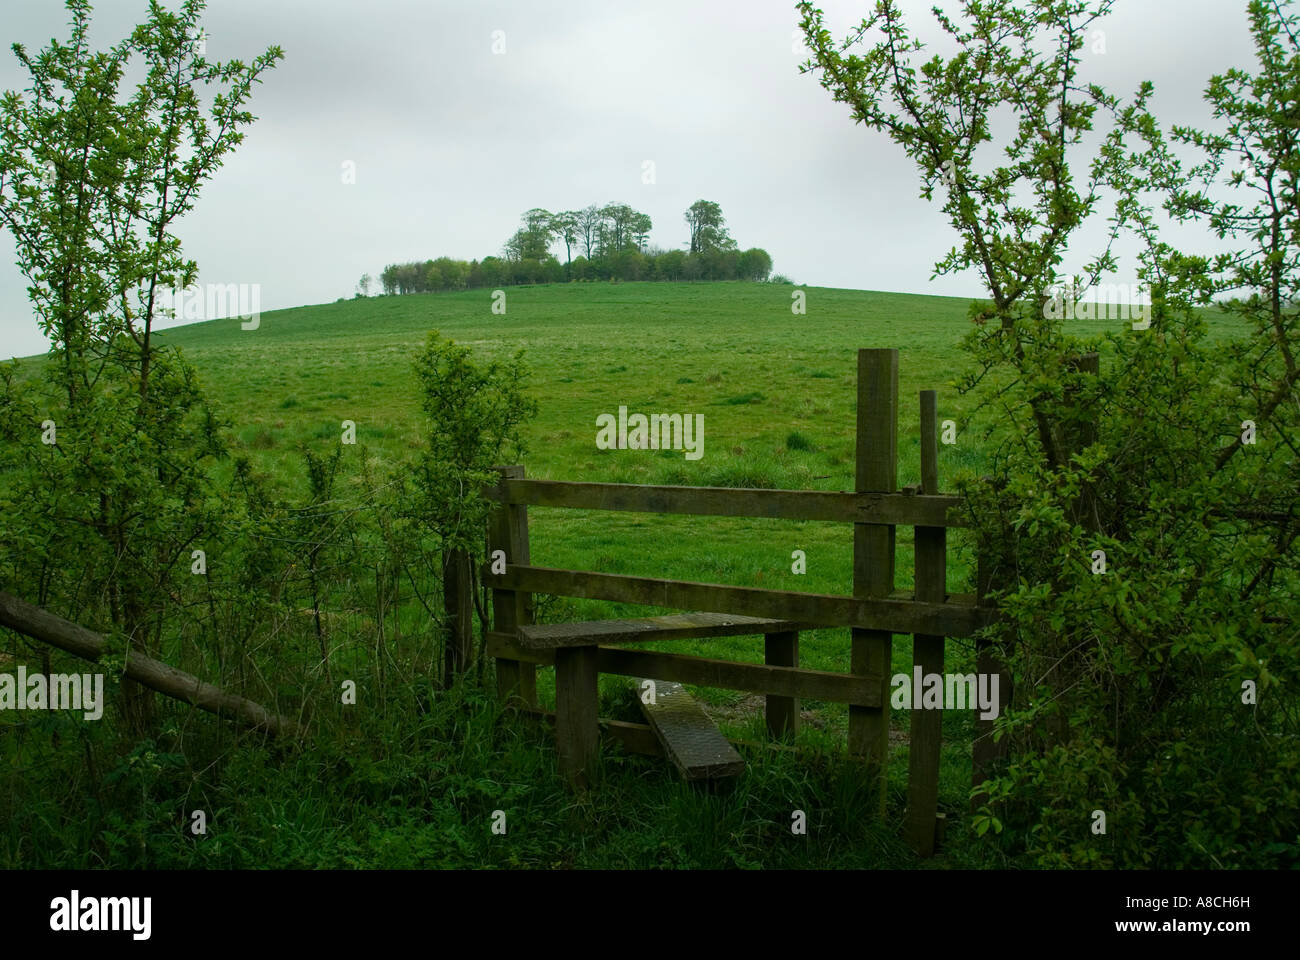 Stile Style Gate Wittenham Clumps Oxfordshire on an Overcast Day - Stock Image